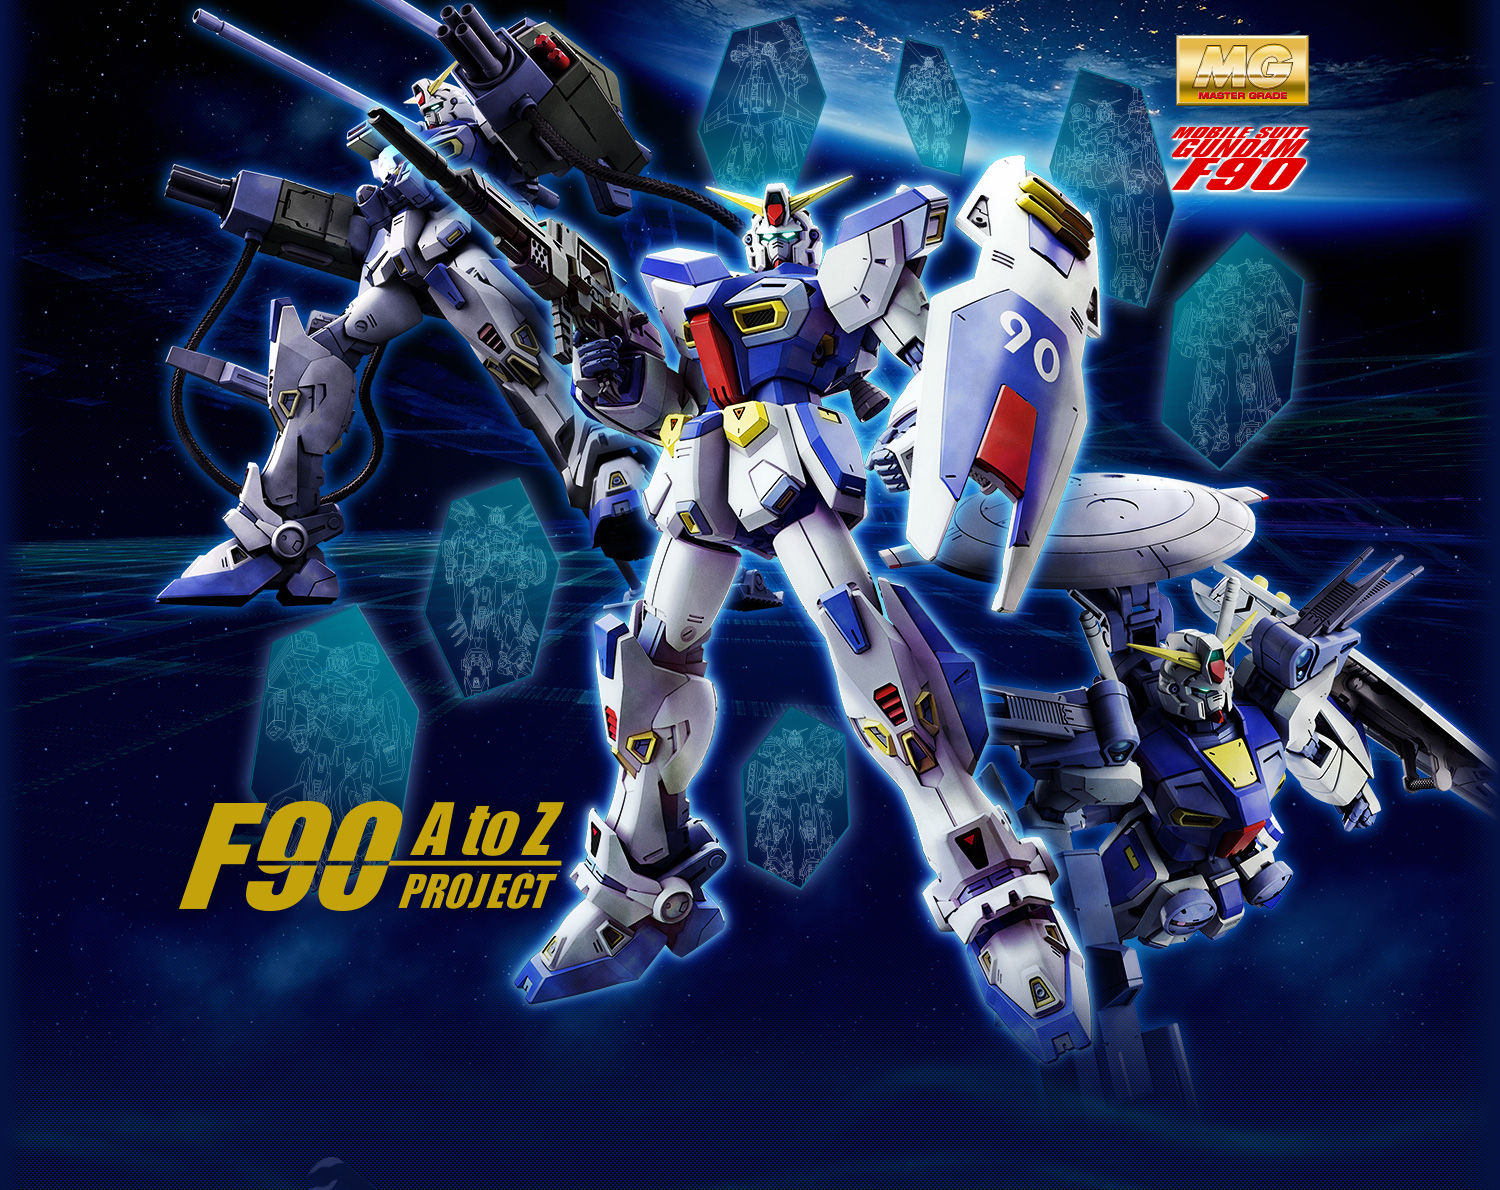 Mobile Suite Gundam F90 A to Z Project